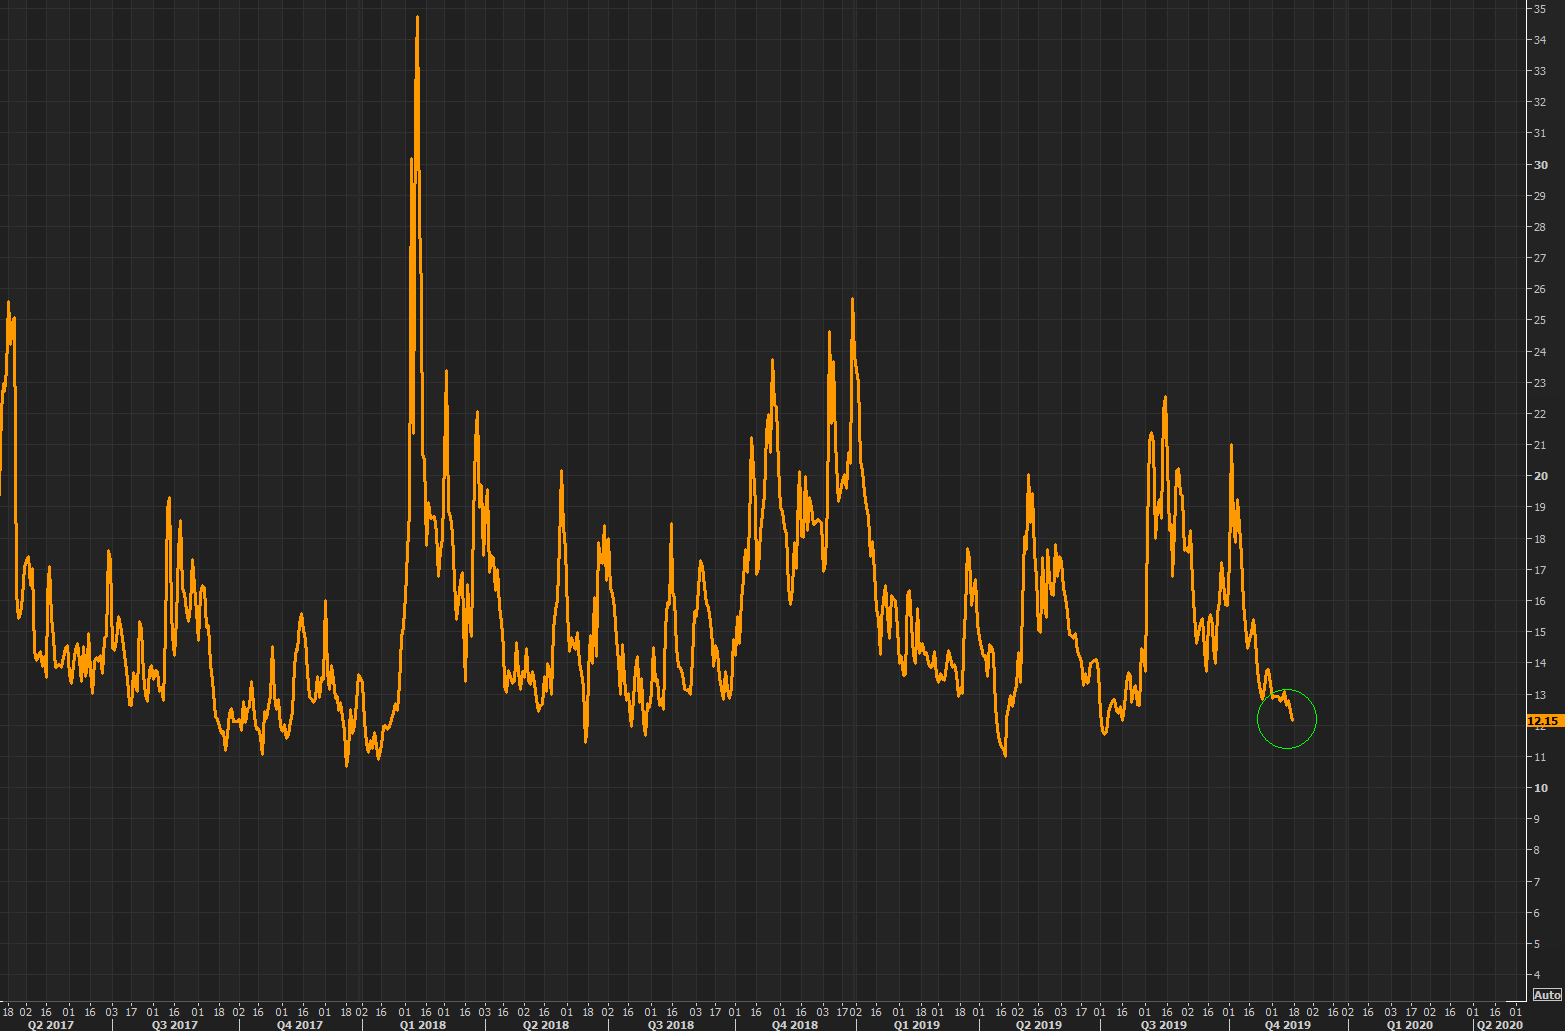 Kill Vol  - Eurostoxx 50 vol, V2X, another day with crashing vols, trades at 12.12